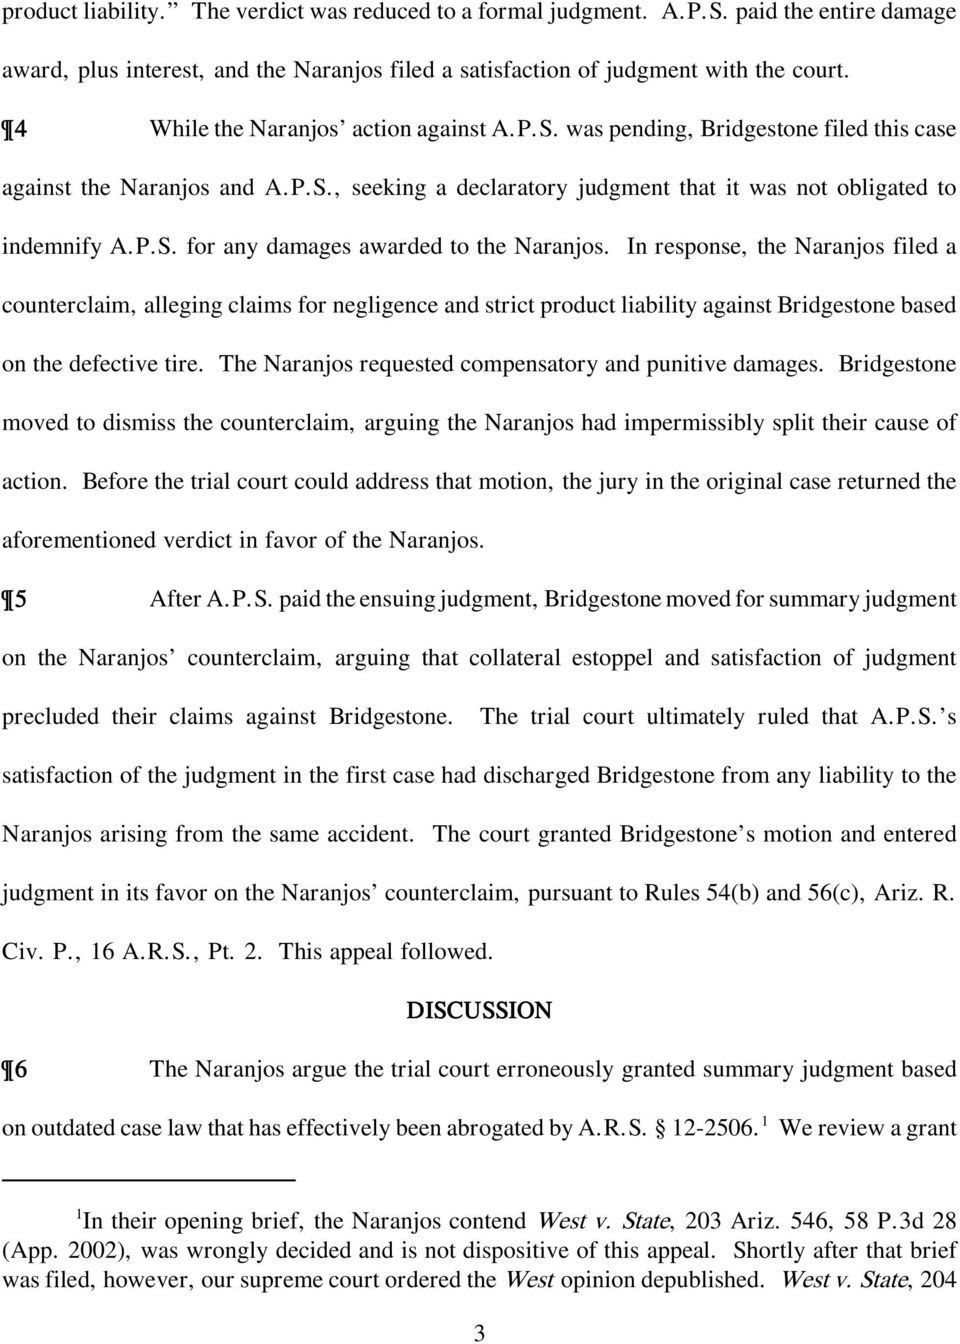 In response, the Naranjos filed a counterclaim, alleging claims for negligence and strict product liability against Bridgestone based on the defective tire.